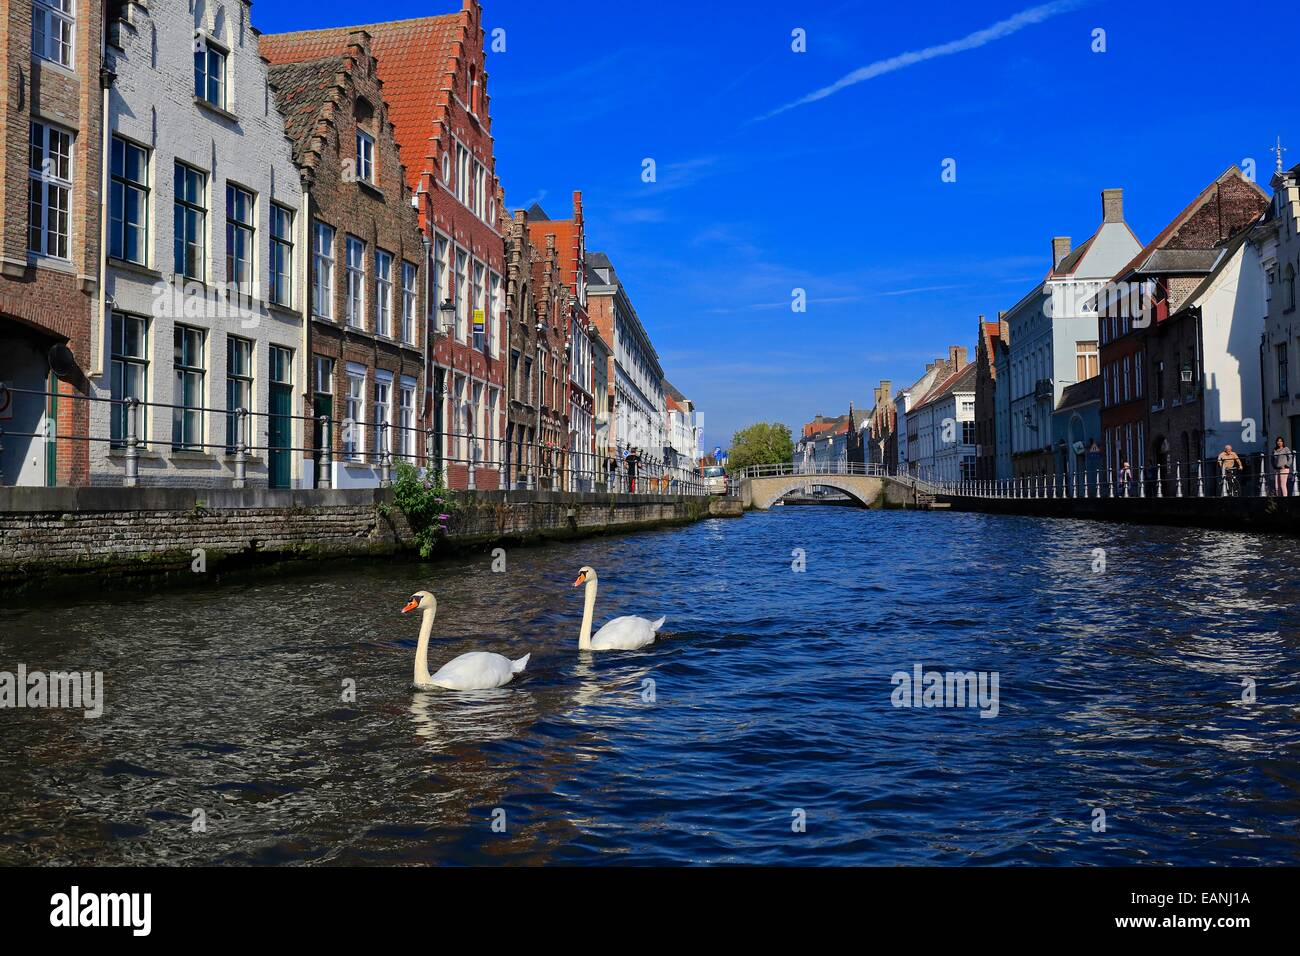 Bruges old town Canal scene showing bridge across St Annarei  canal, Belgium. Bruges canal scene Bruges old town - Stock Image